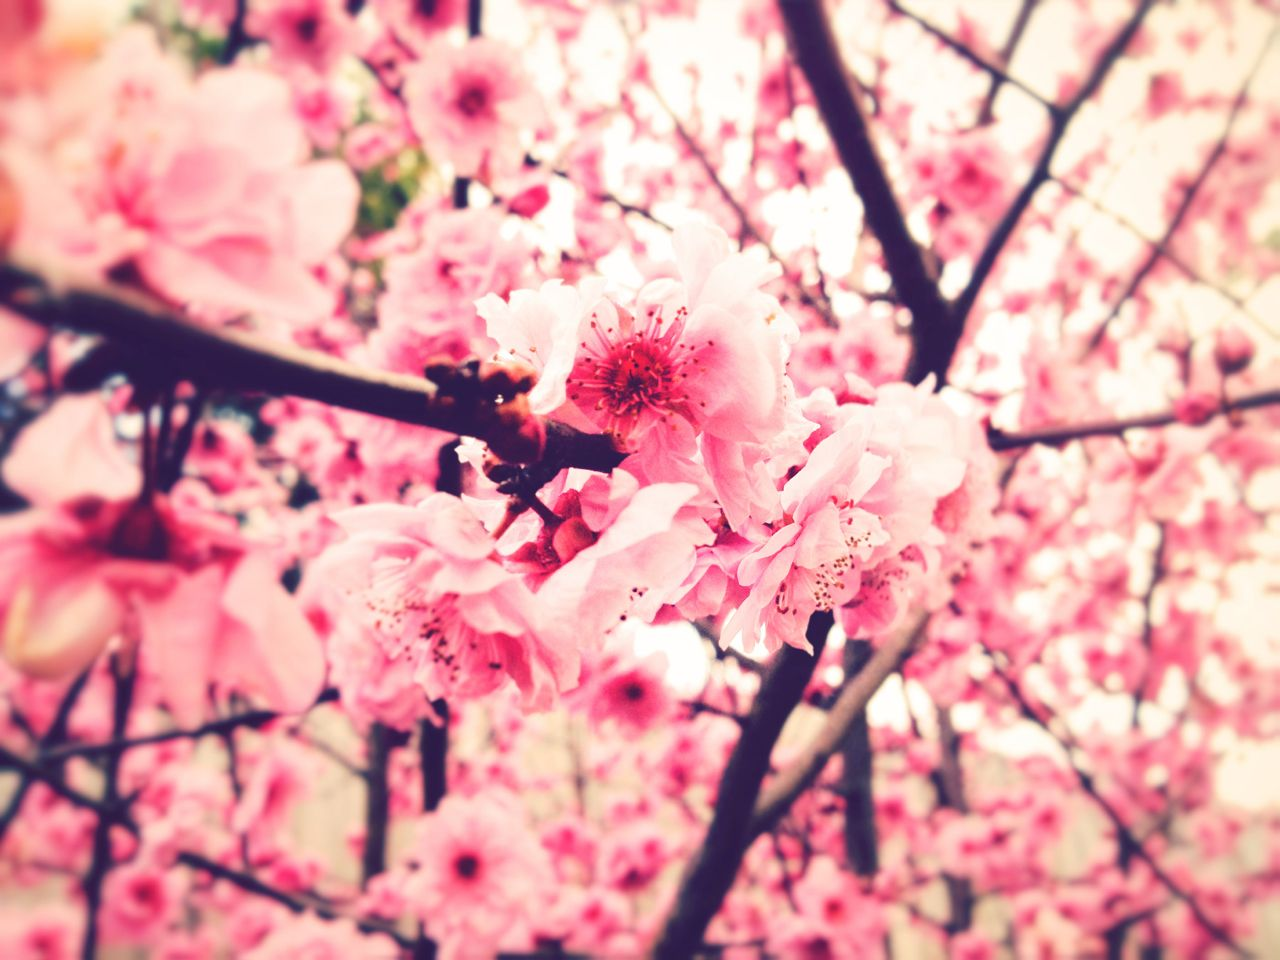 Related Wallpaper. Flowers Tumblr Photography 48 | love it ...